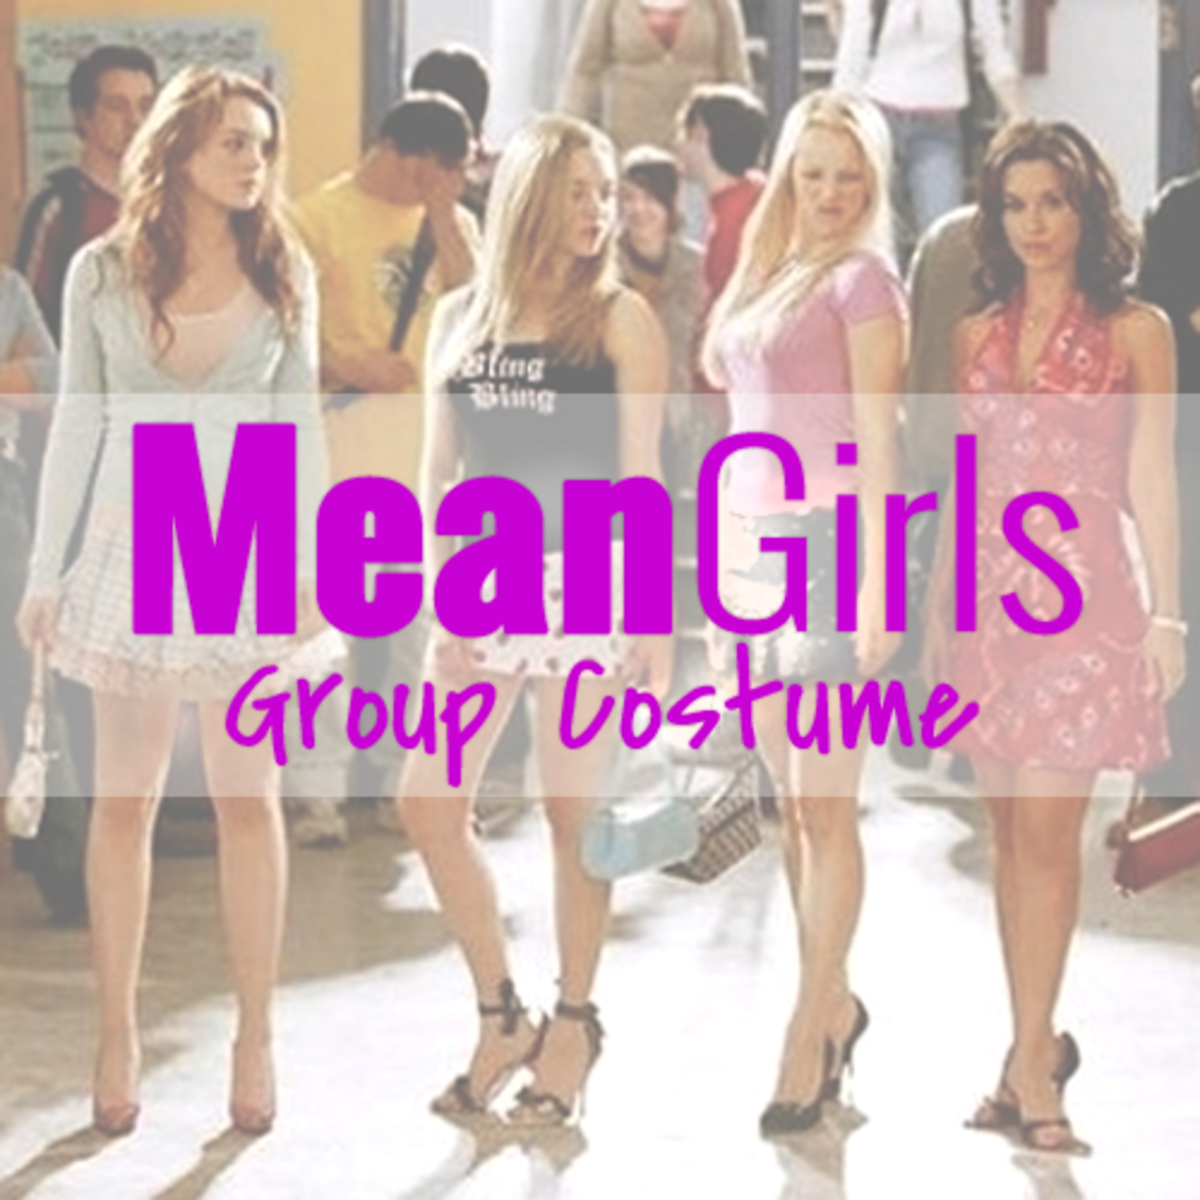 How to Put Together a Mean Girls Group Costume